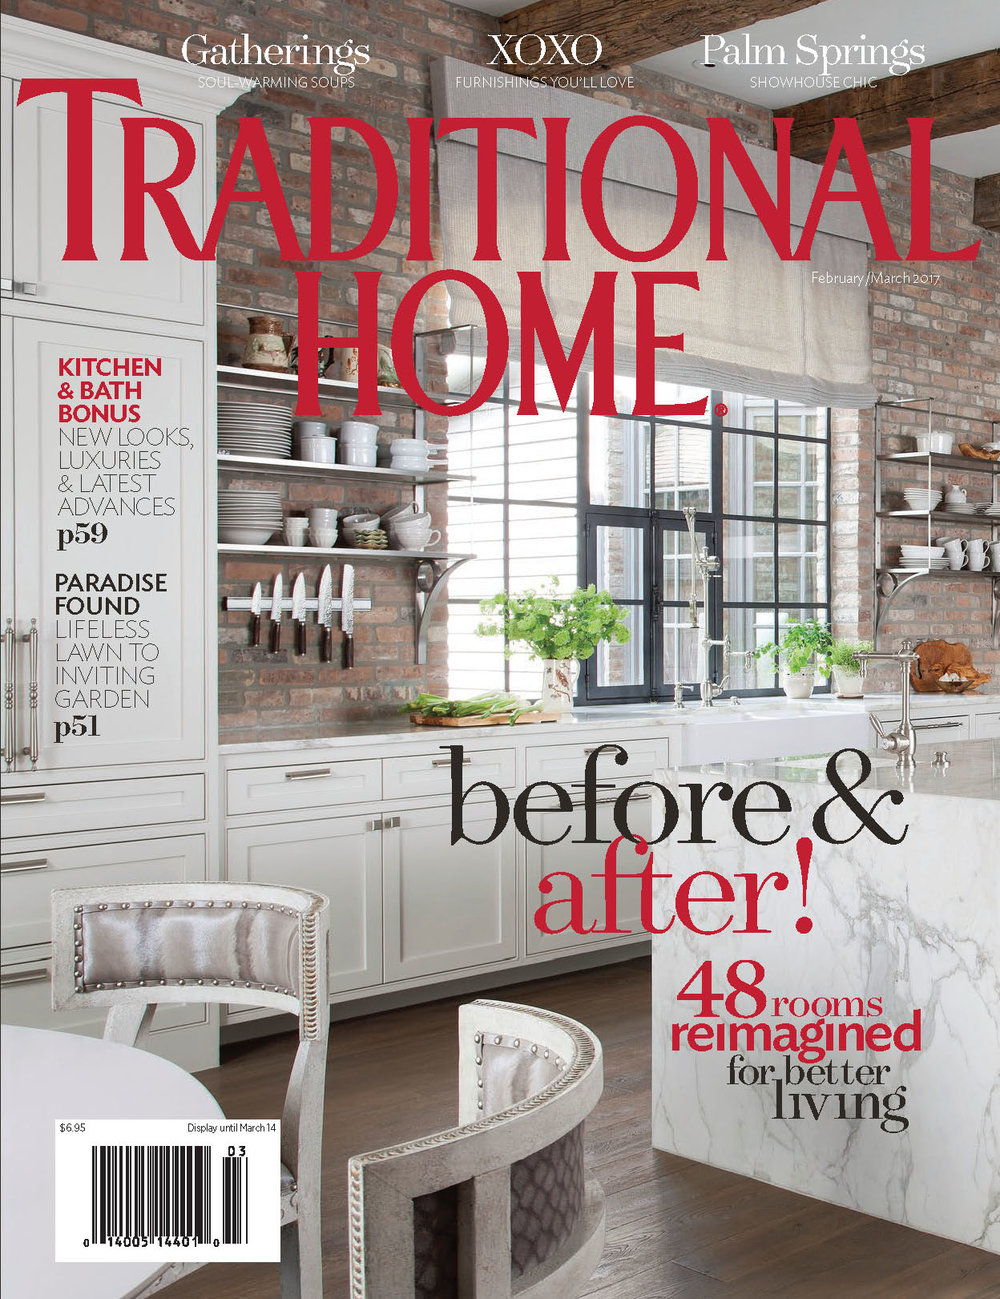 000 TraditionalHome FebMar2017.jpg